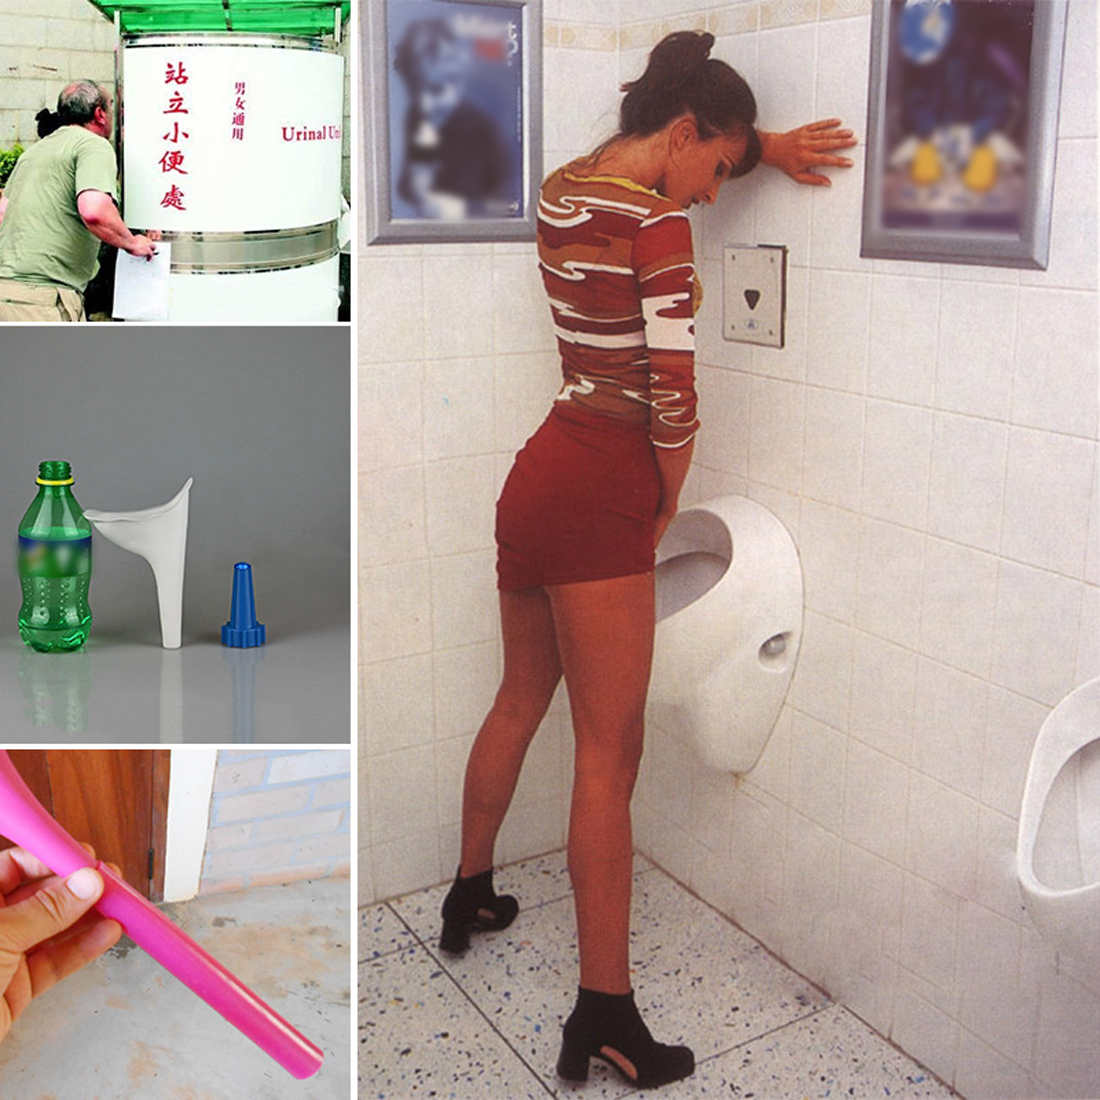 New Design Women Urinal Outdoor Travel Camping Portable Female Urinal Soft Silicone Urination Device Stand Up & Pee